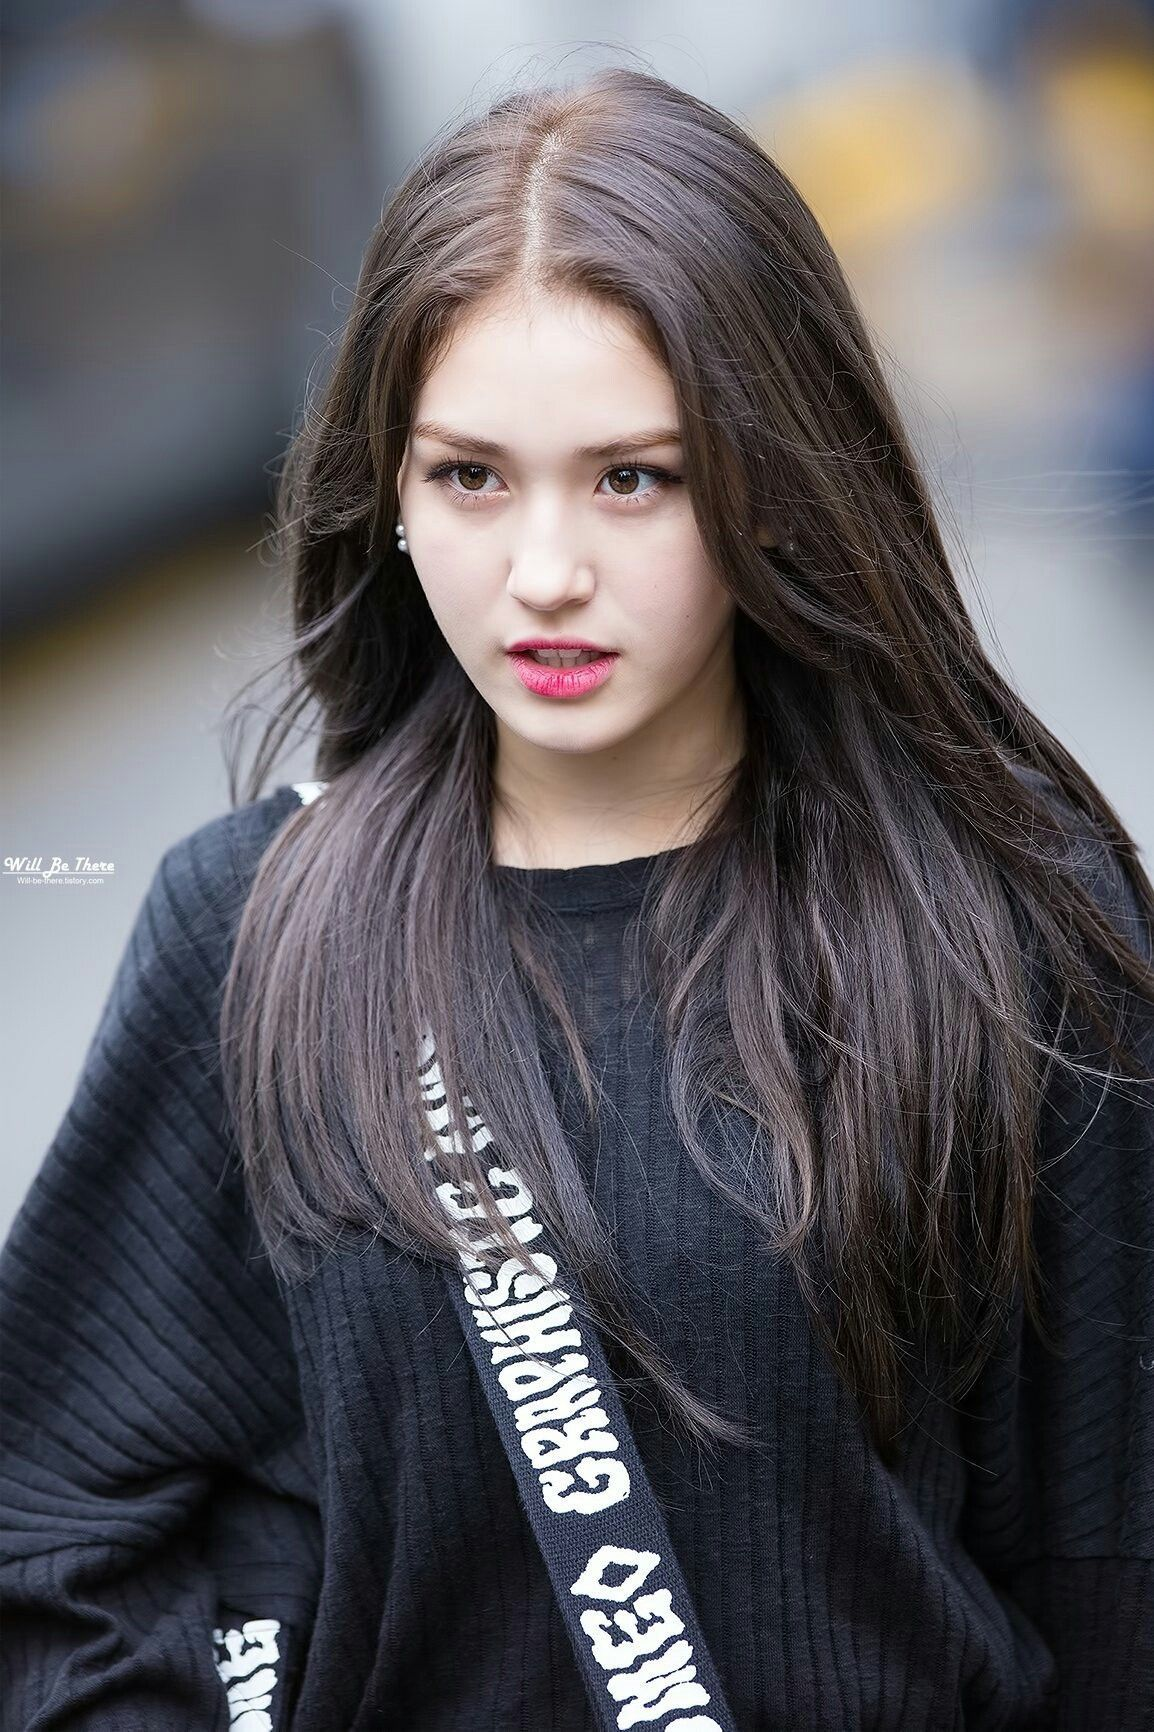 pin by ioidreamers on jeon somi in 2019 | jeon somi, somi